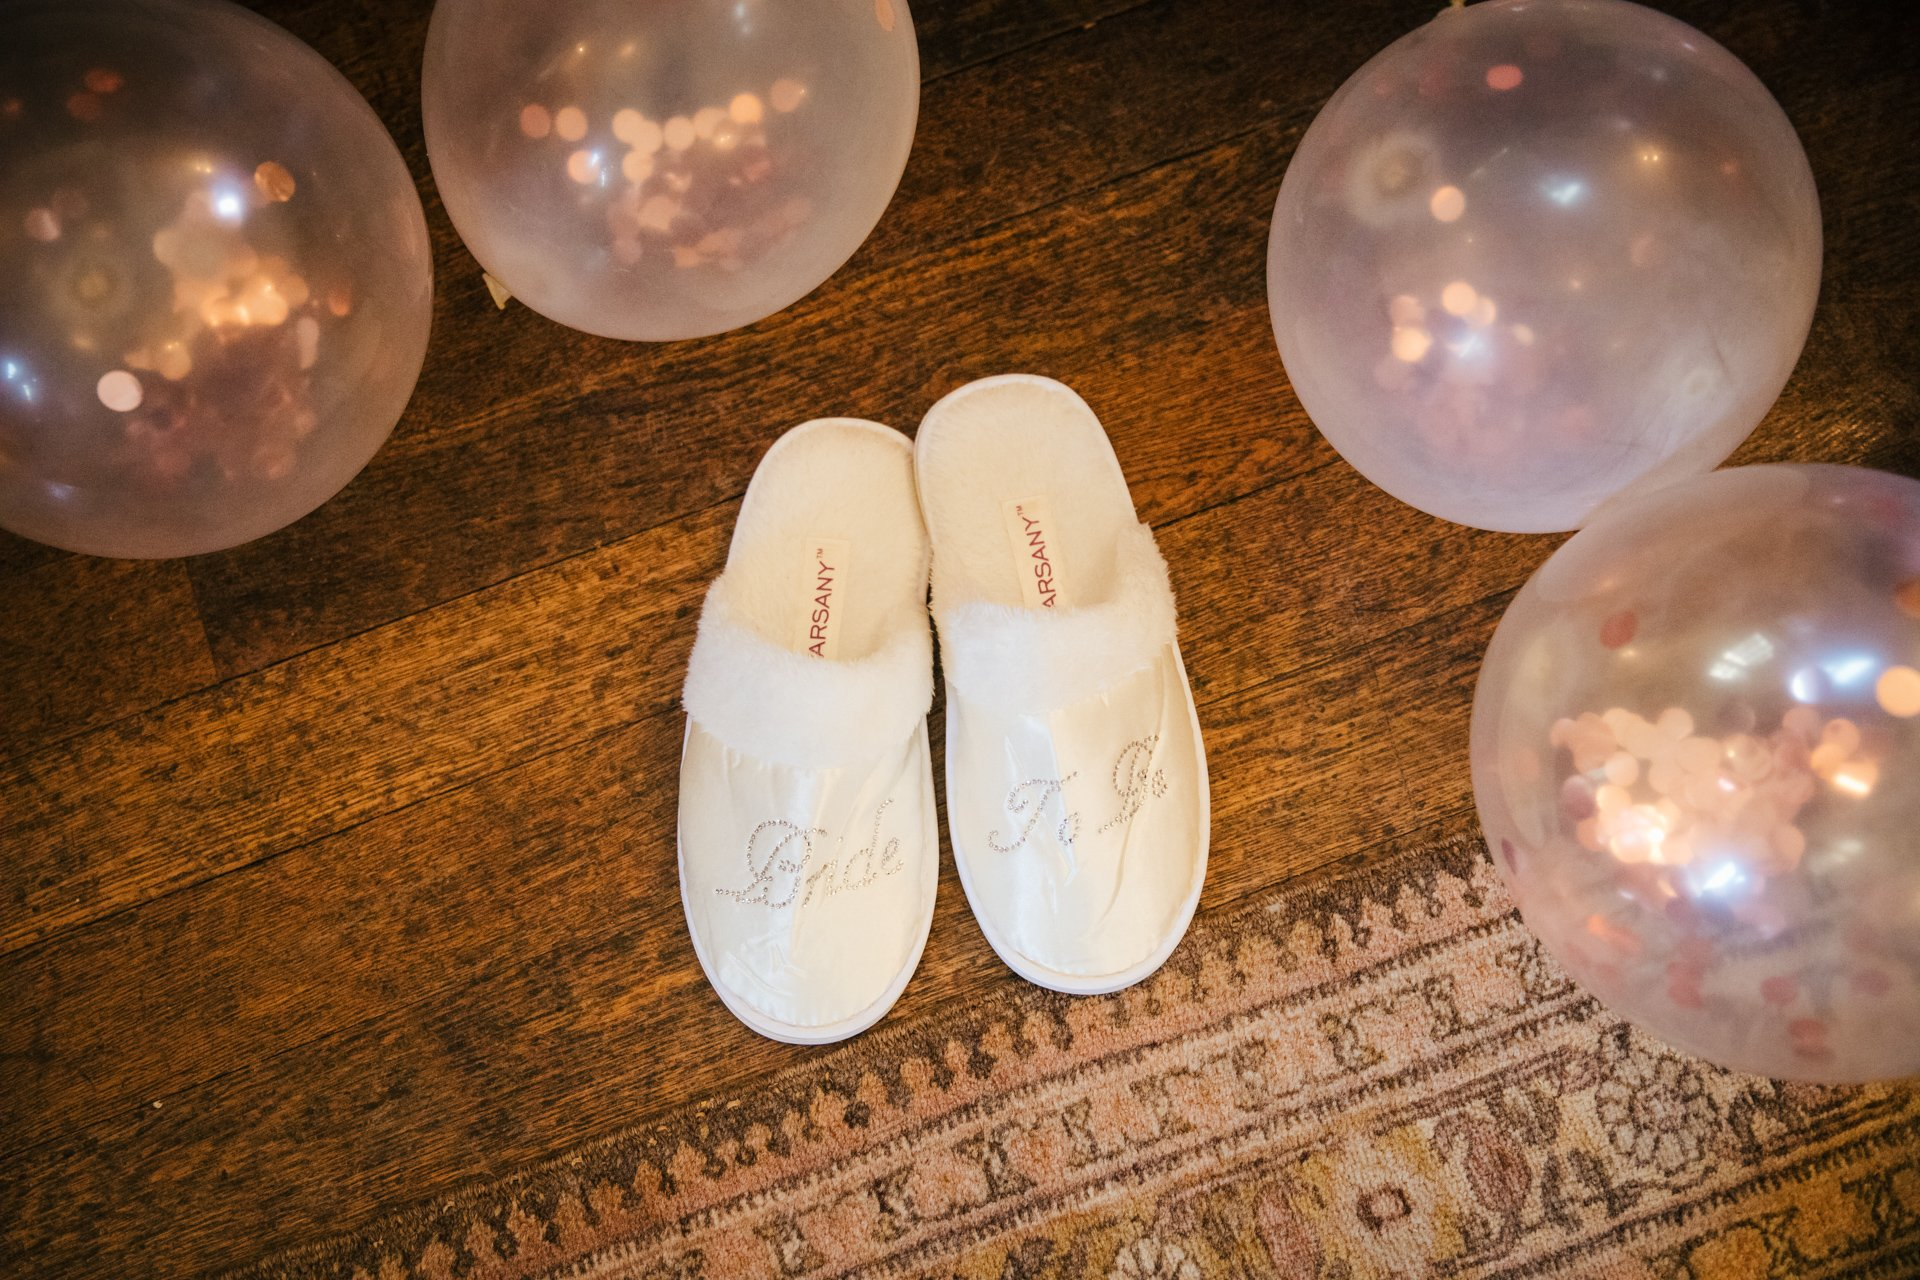 Bride to Be slippers and balloons as the bride gets ready for her wedding